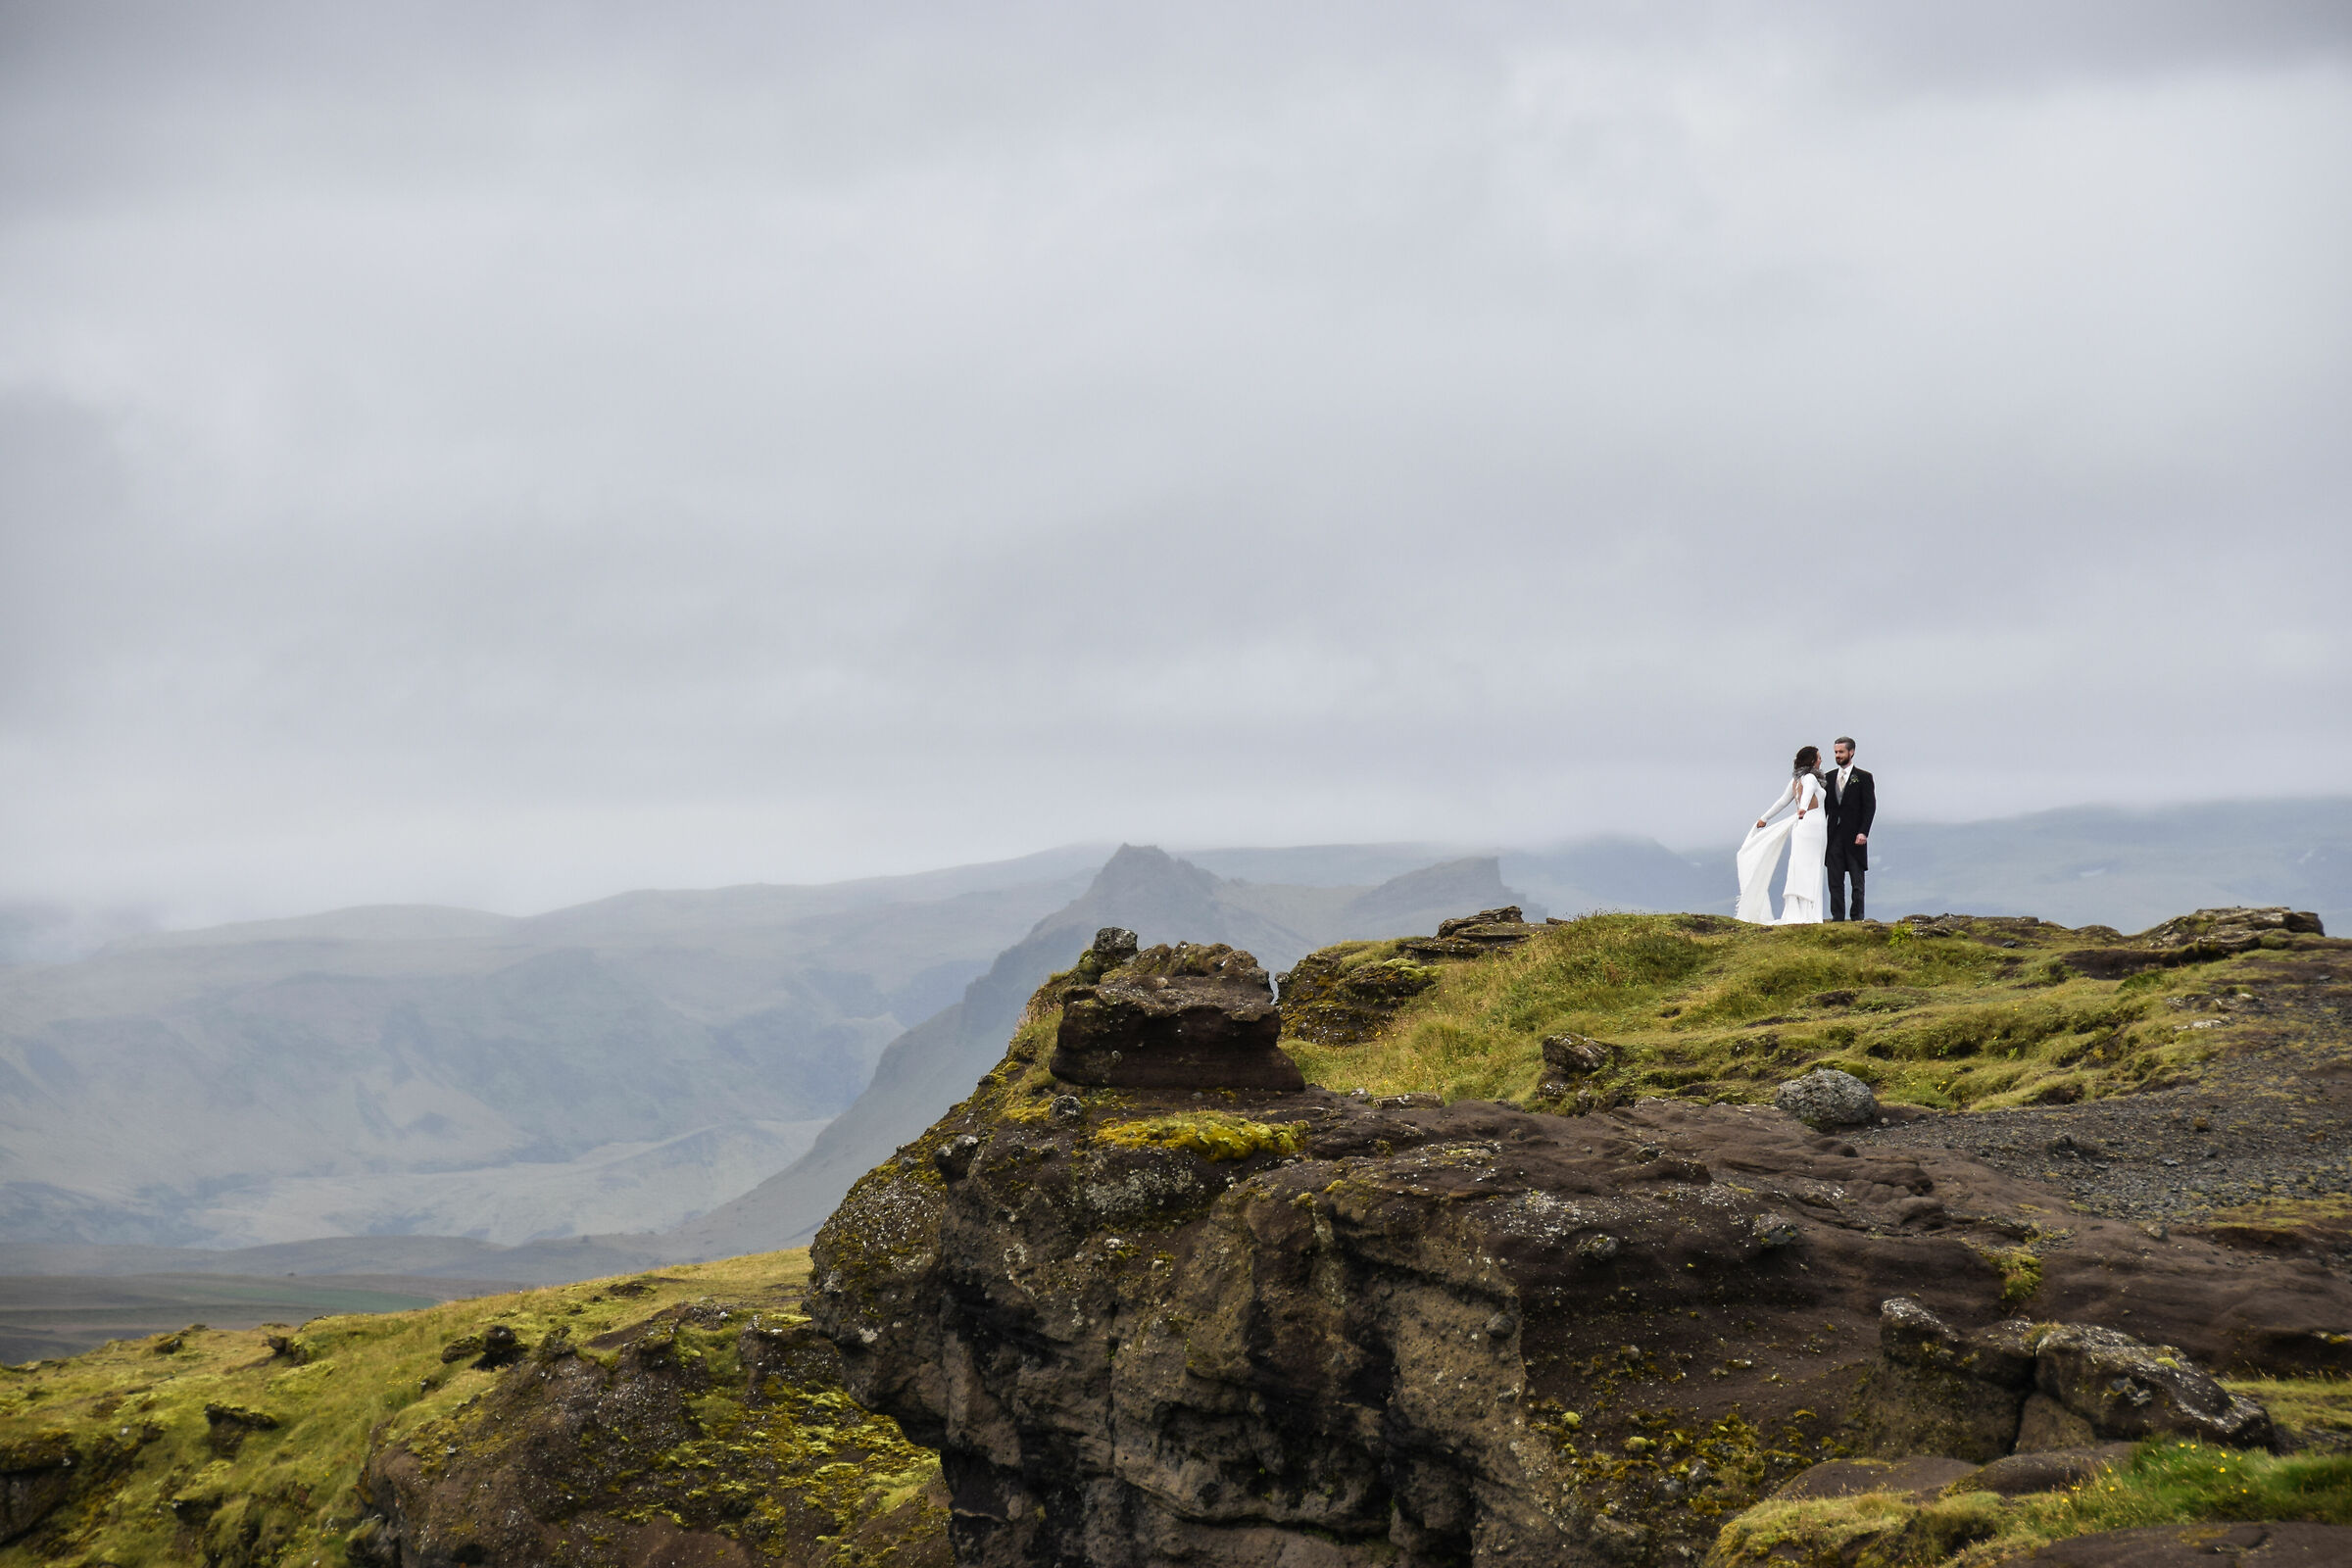 spouses and nature...